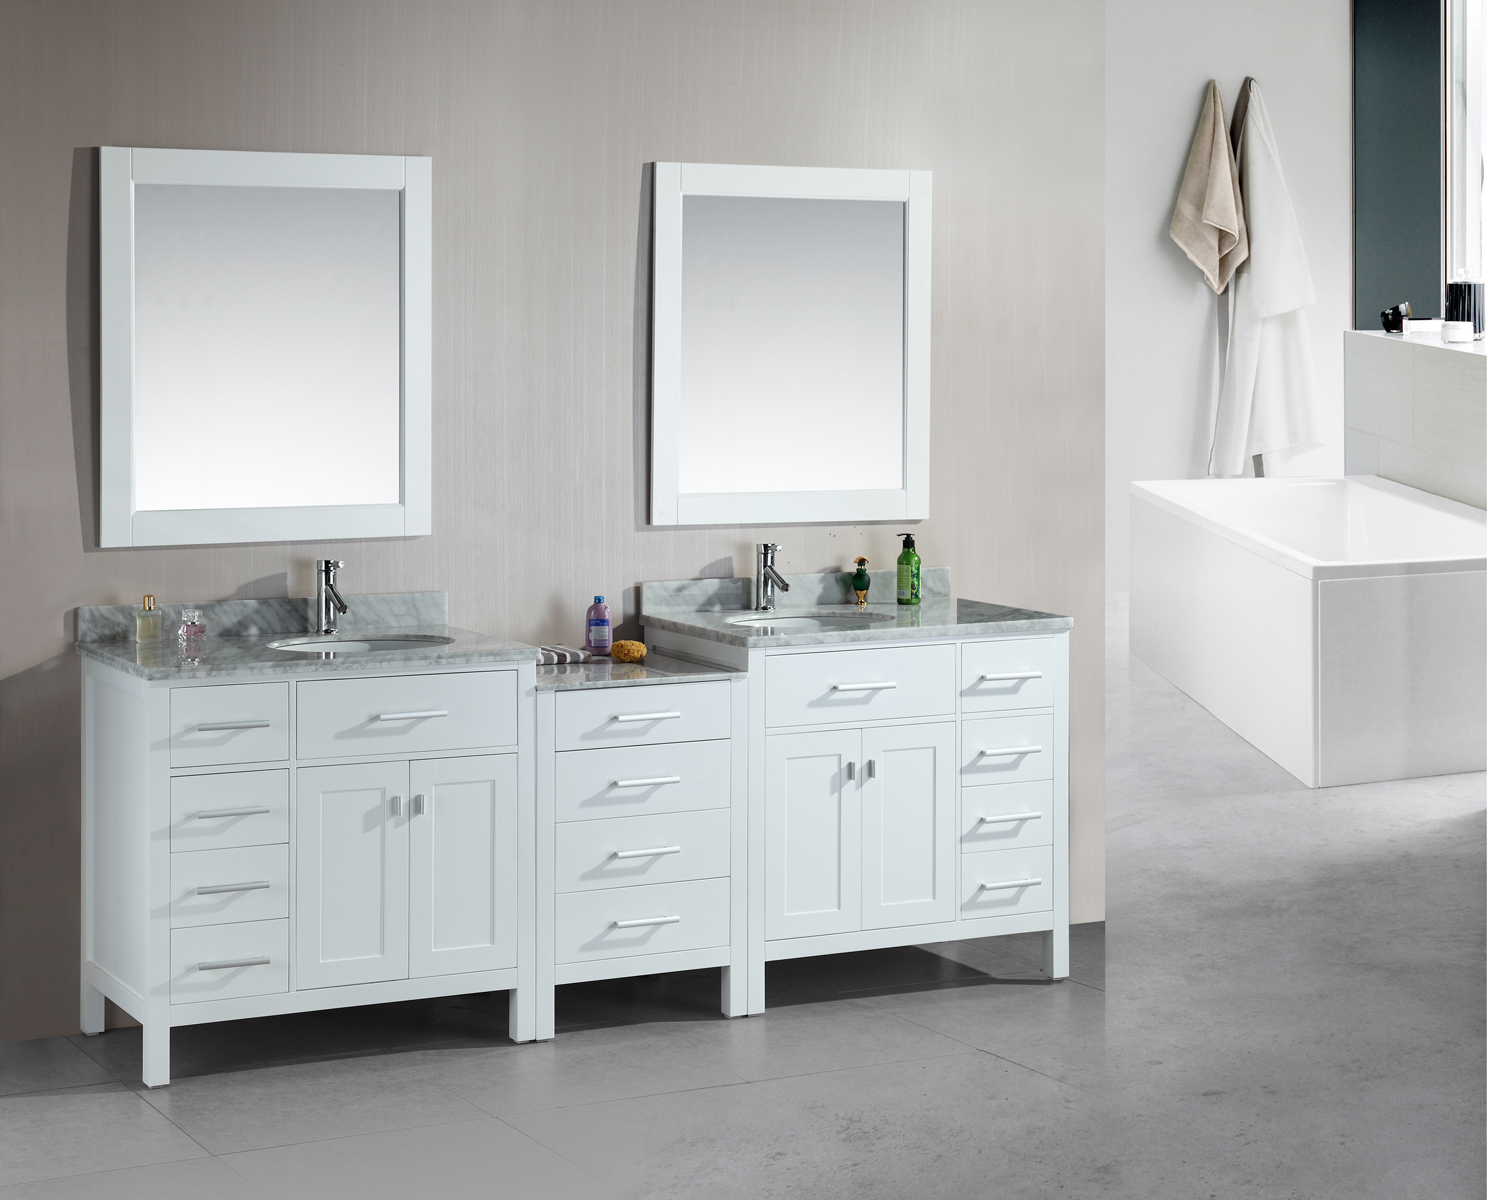 Custom Bathroom Cabinets Miami Fl CUSTOM CABINET MAKERS MIAMI FL - Bathroom vanities hialeah fl